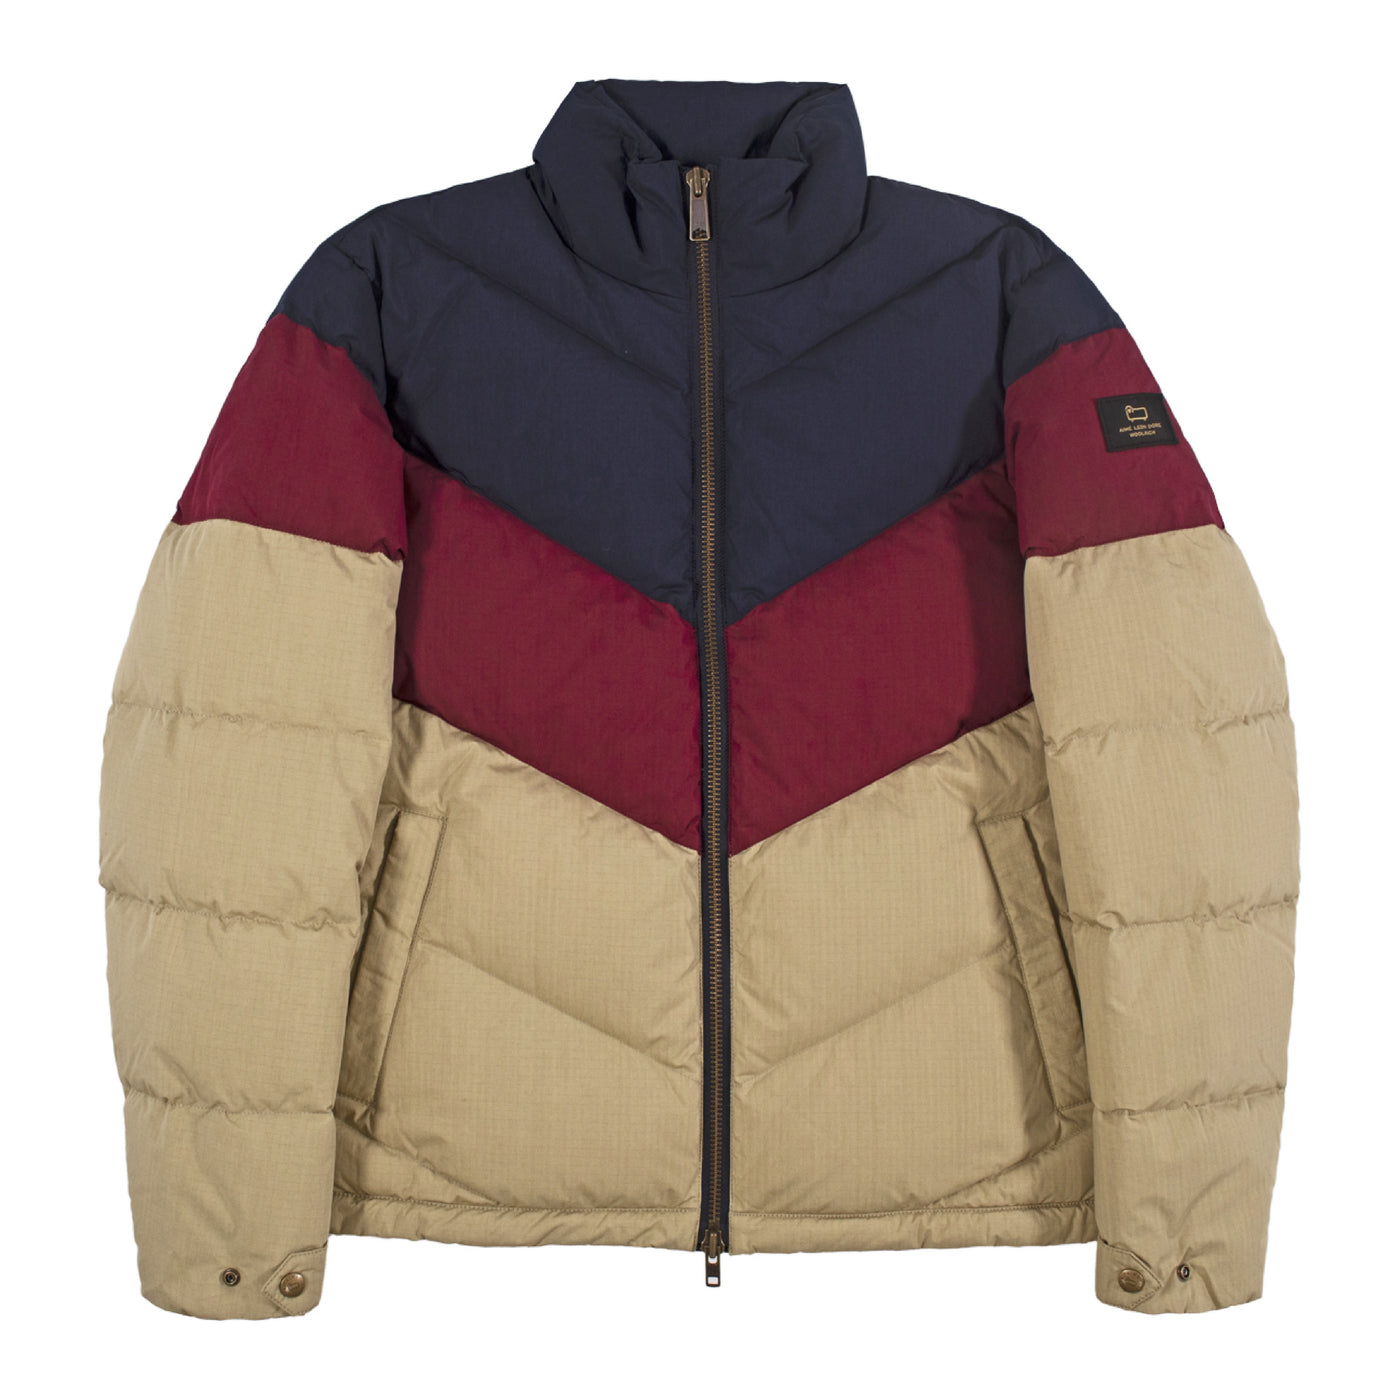 Load image into Gallery viewer, AIME LEON DORE WOOLRICH CHEVRON PUFFER NEUTRAL